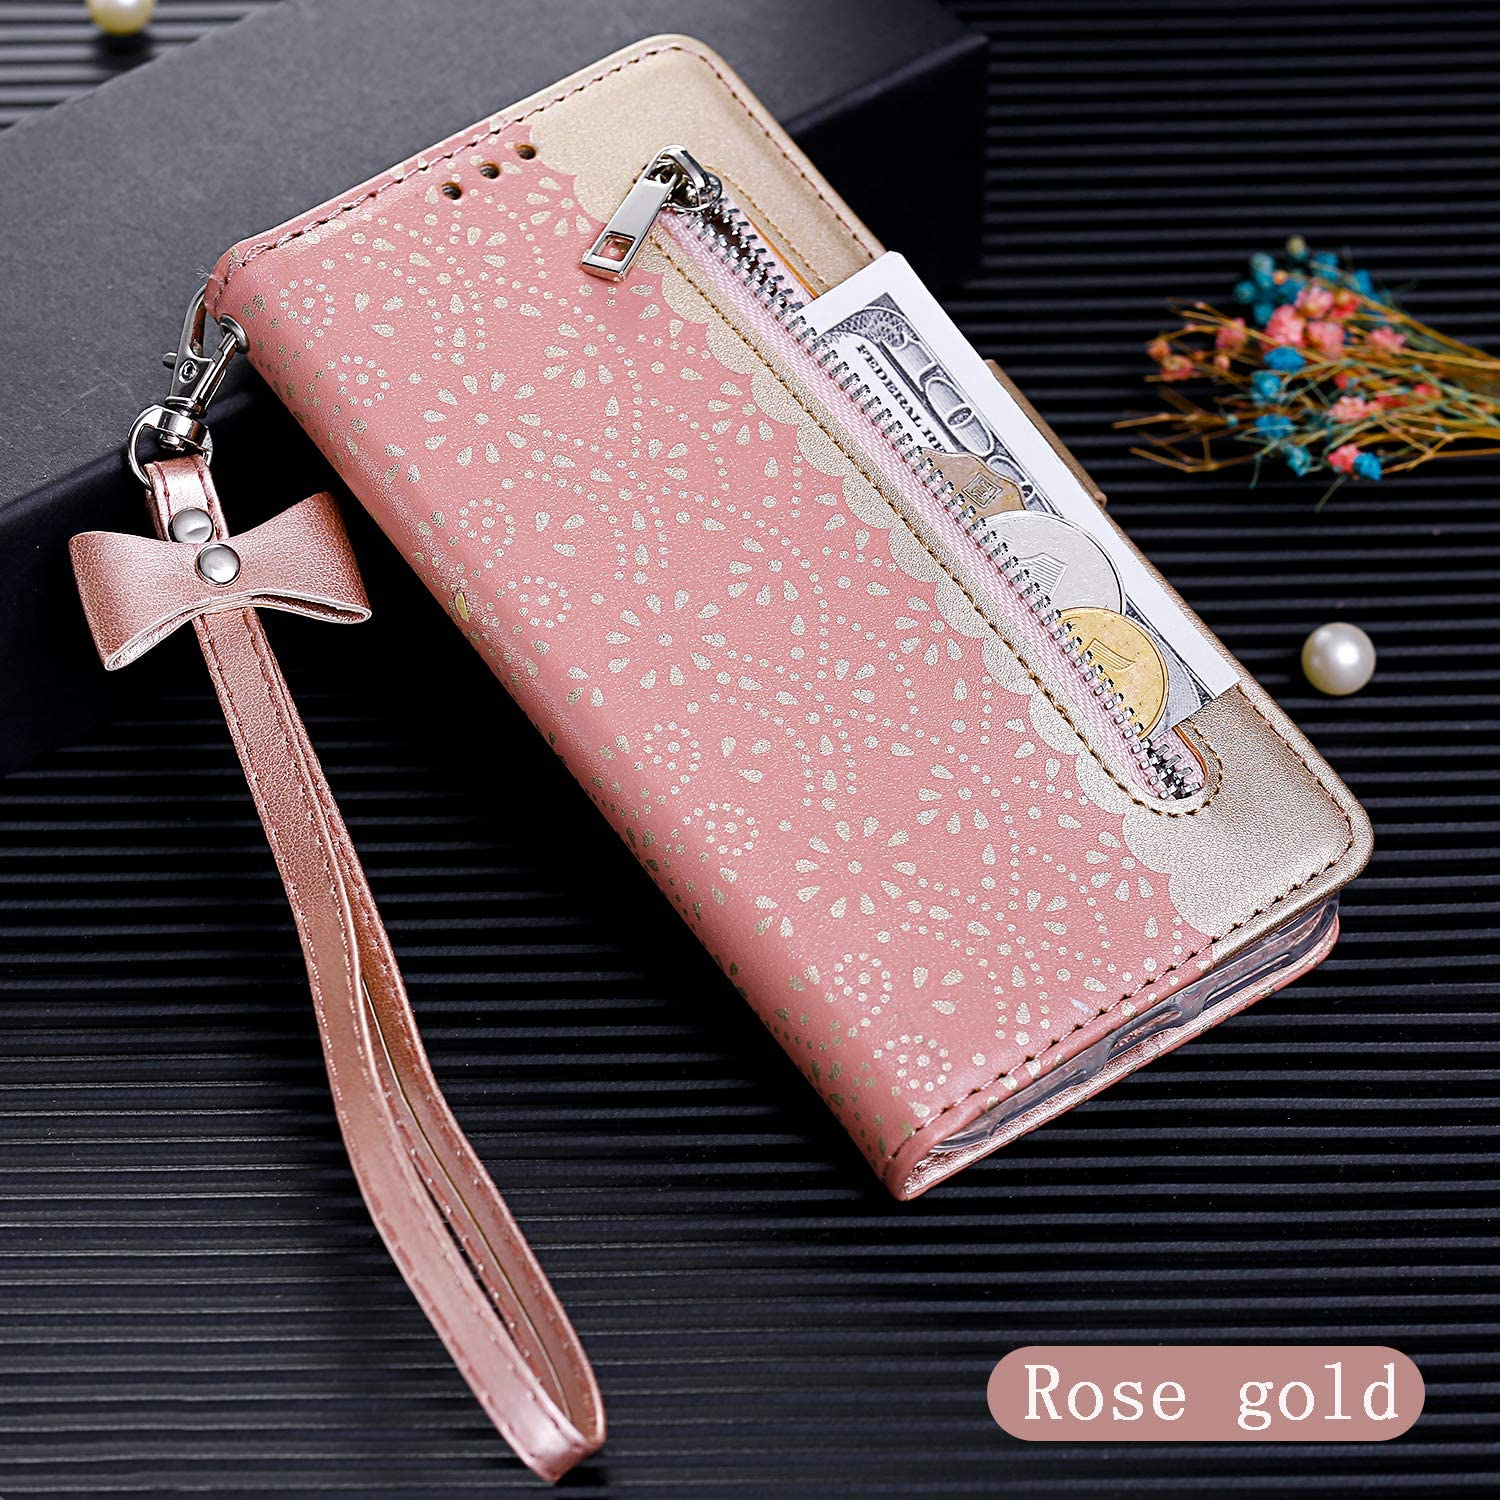 Stylish Flip Wallet Case for Samsung Galaxy A7 2018,Lace Pattern PU Leather Case for Samsung Galaxy A7 2018,Moiky Purple Lace Hollow Case with Wrist Strap Shockproof Magnetic Closure Protection